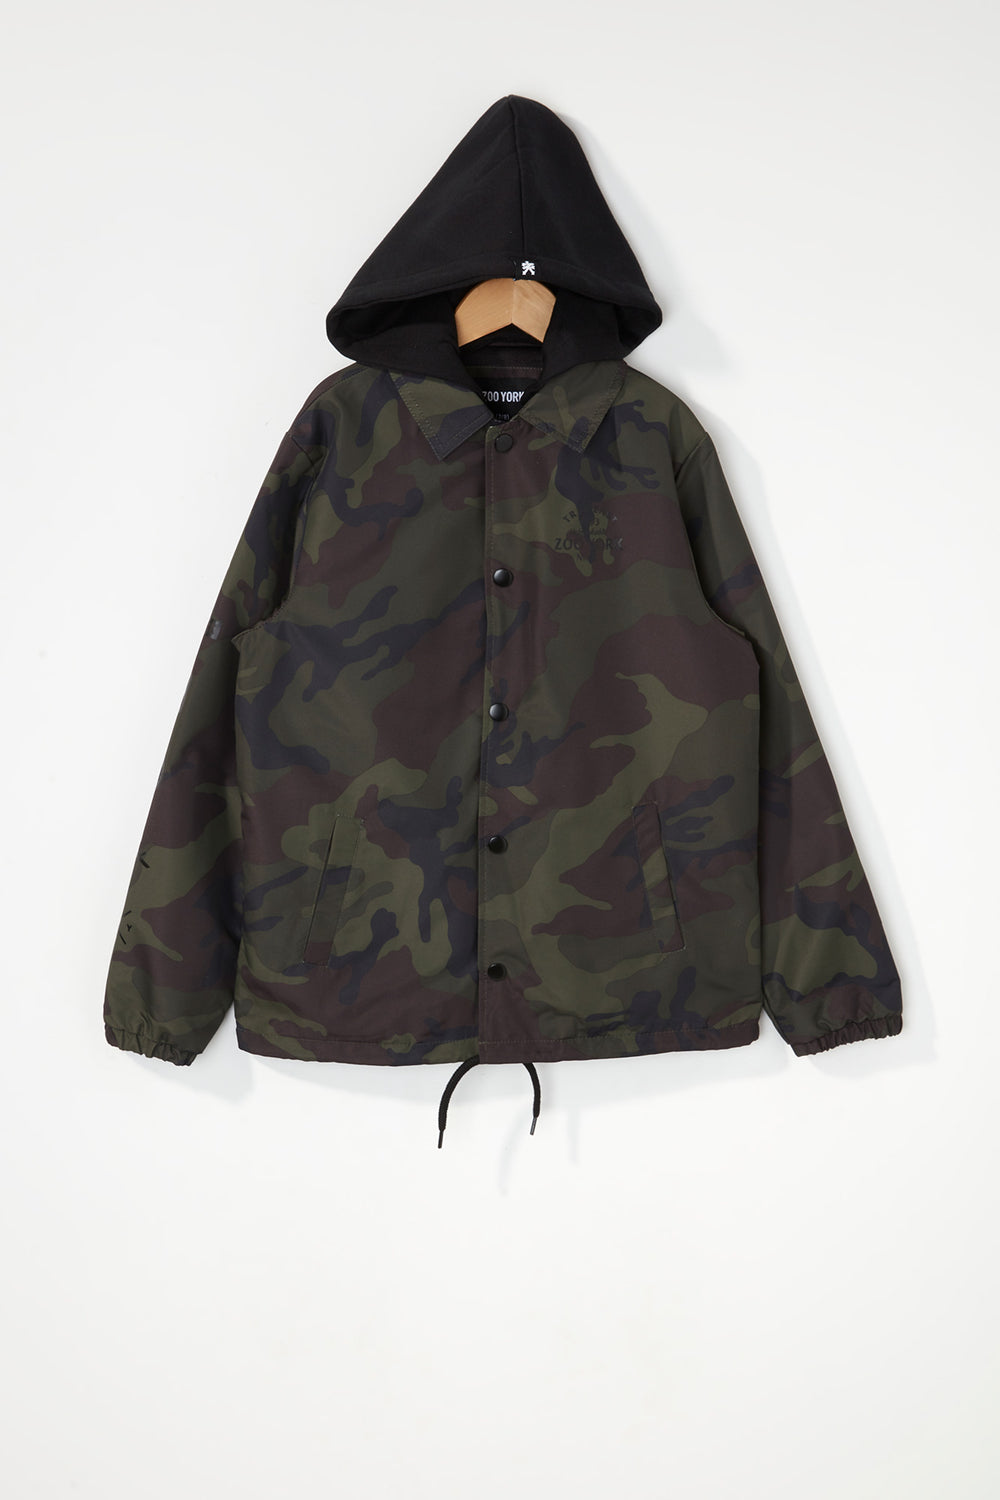 Zoo York Boys Snap-Button Hooded Jacket Camouflage